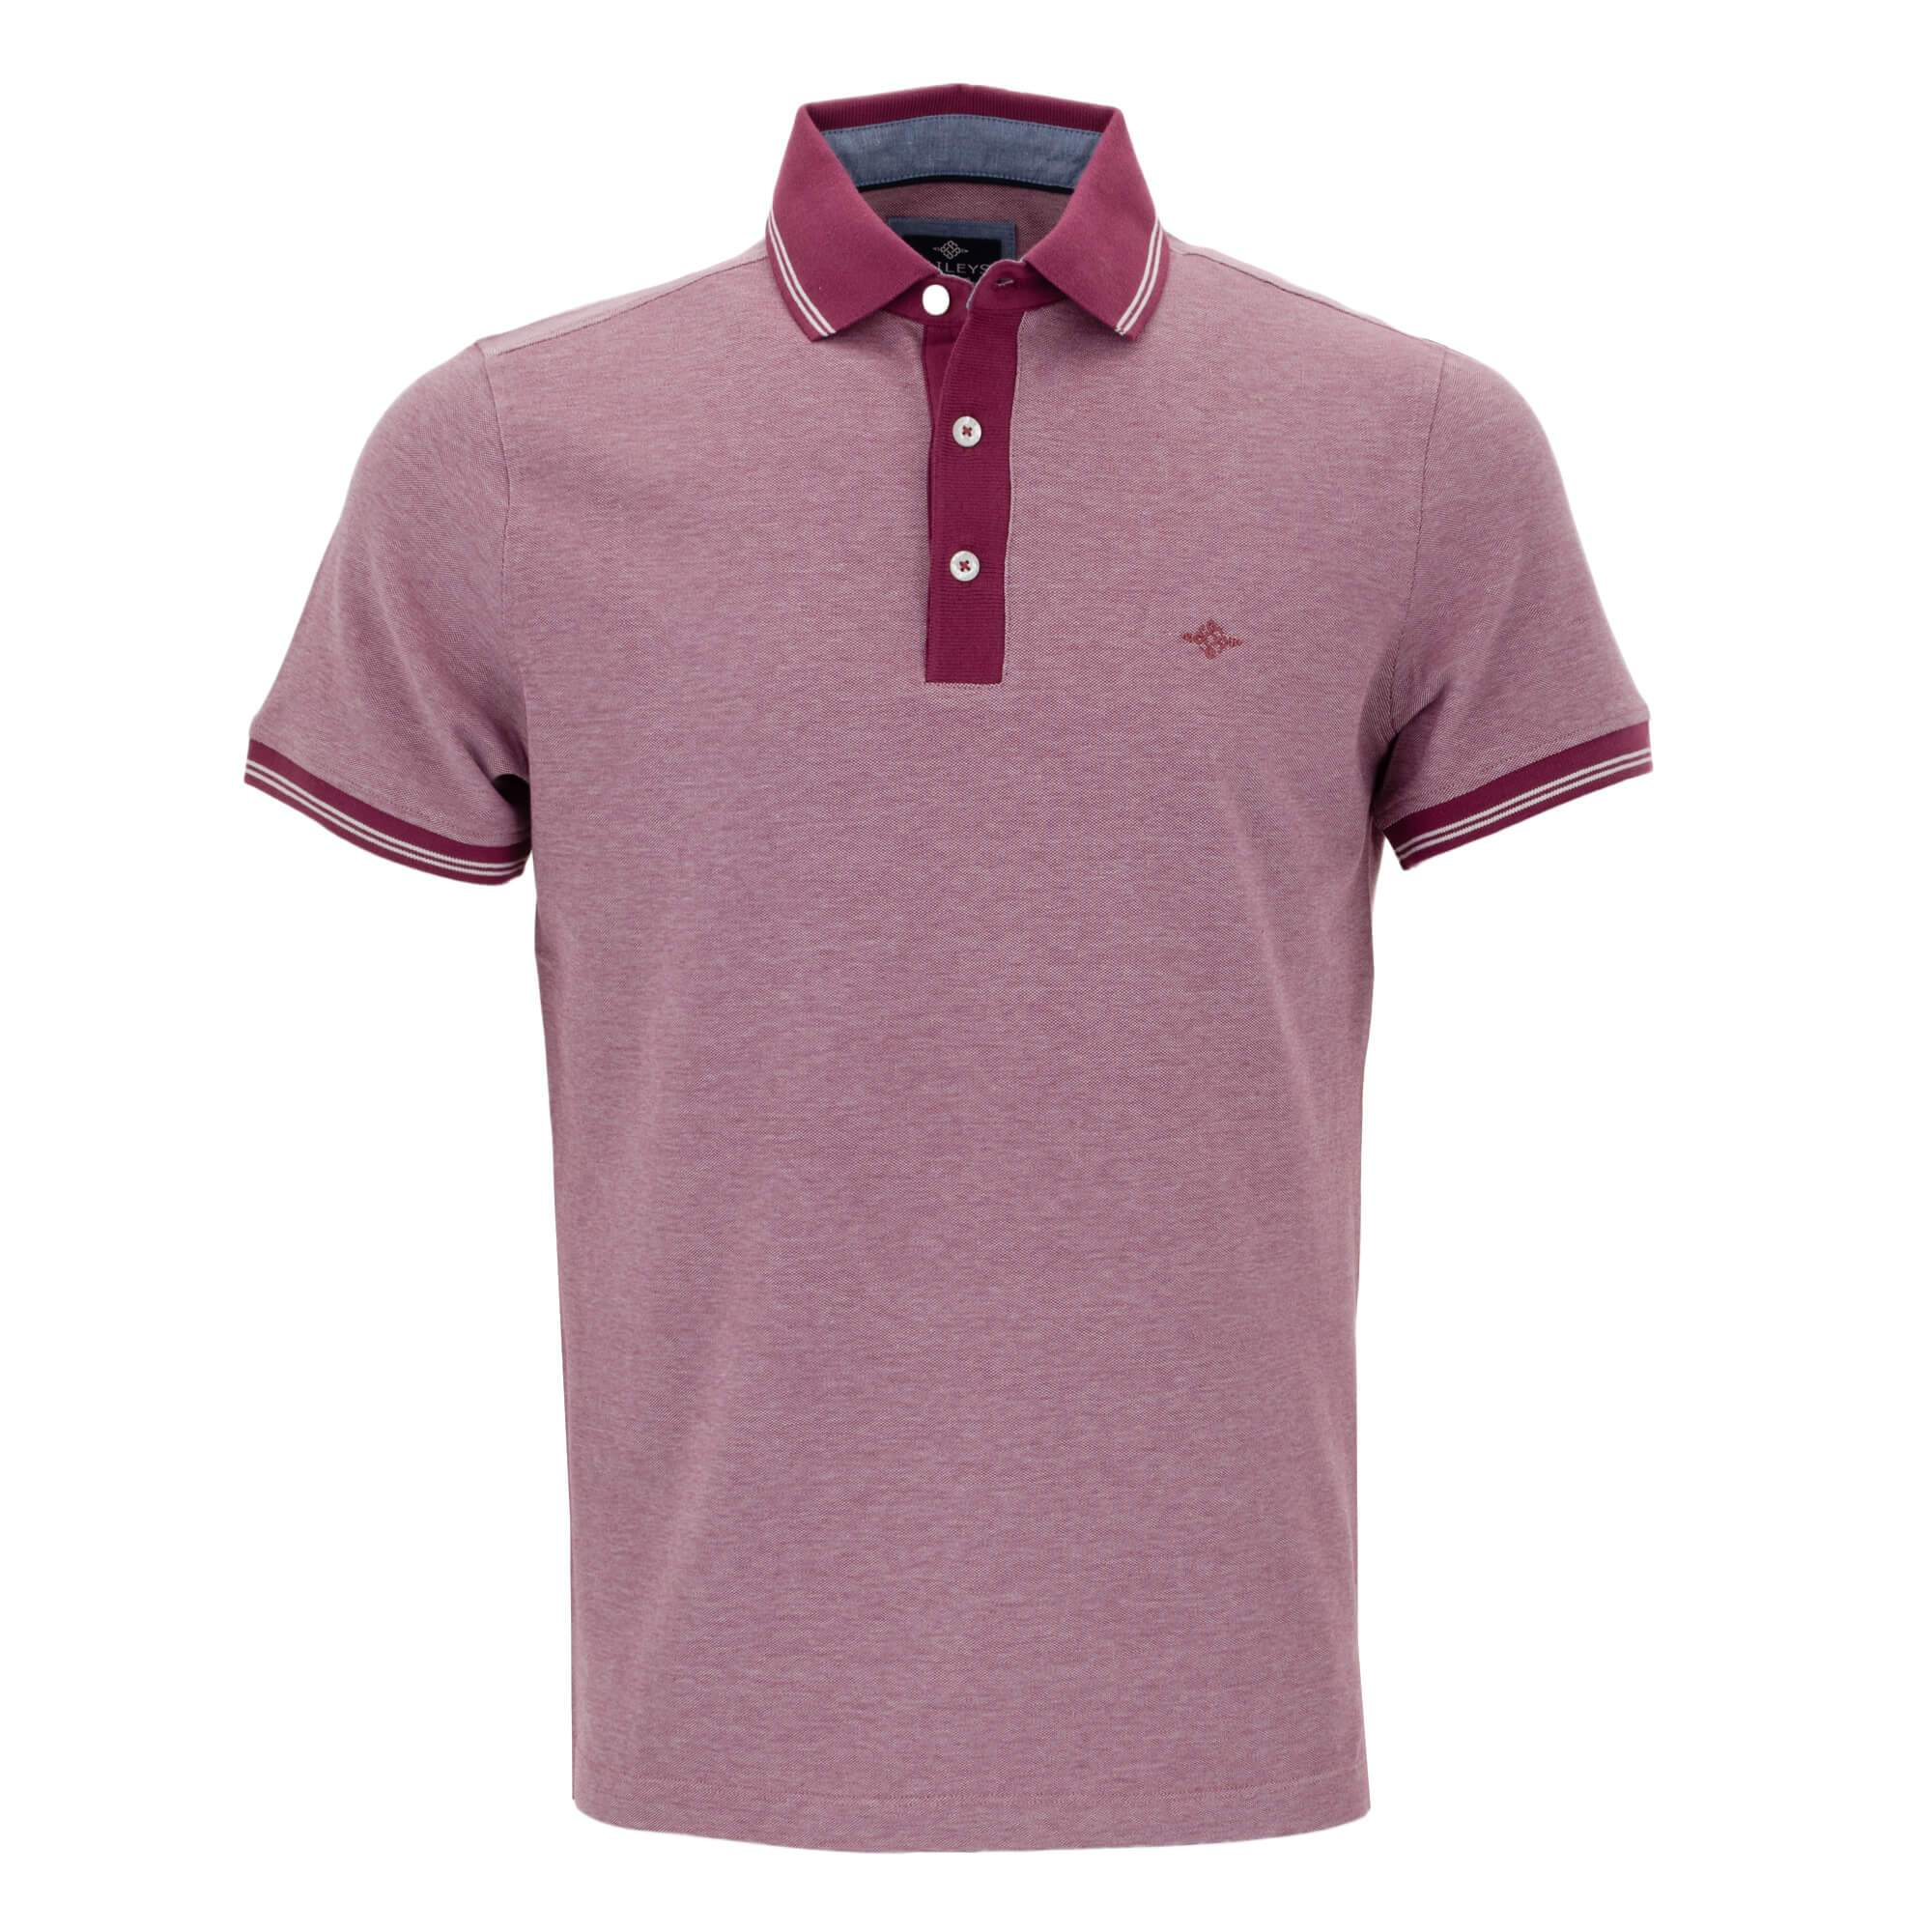 Polo jaspeado con corte regular fit 915269